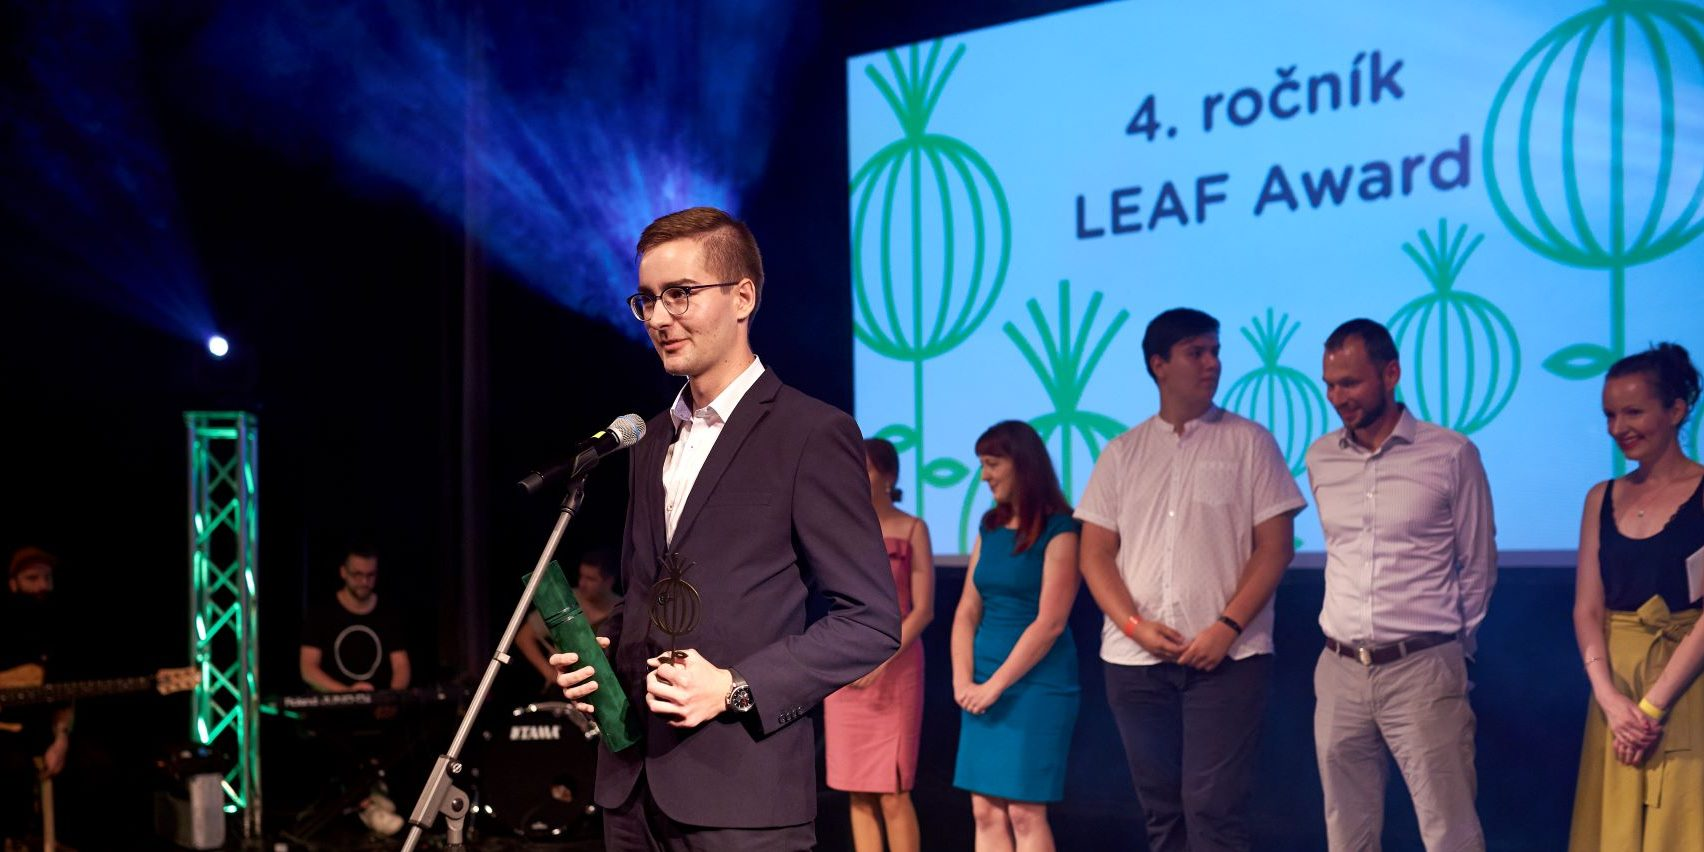 Resize_LEAF Award_050